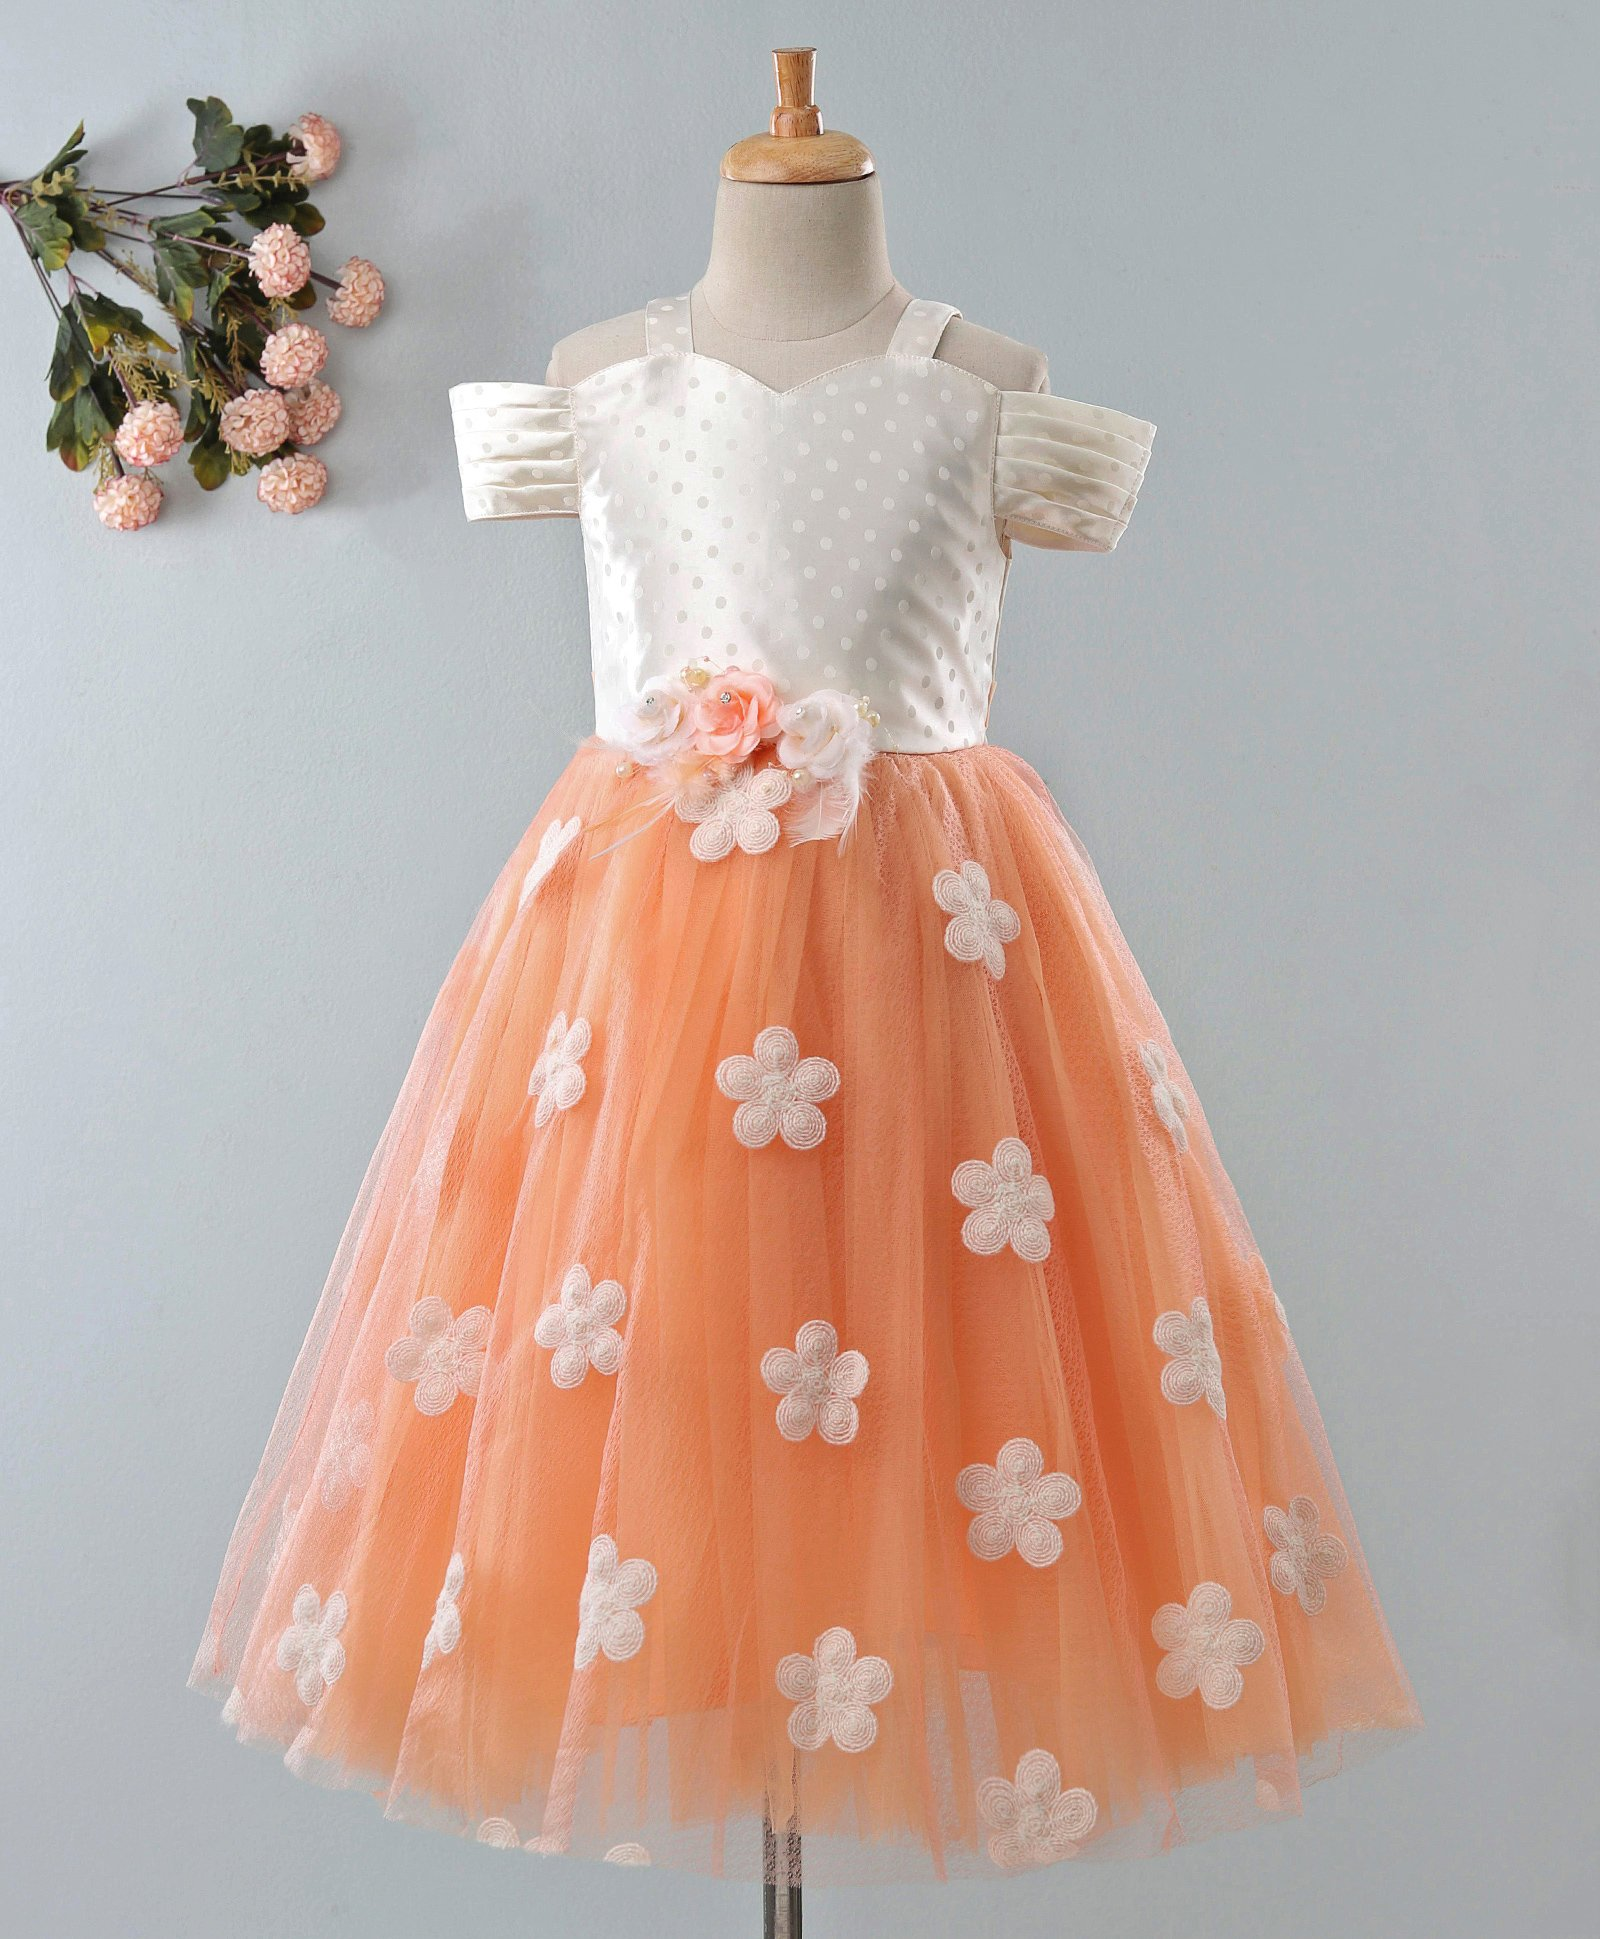 c791ab58f Maalka Flower Embroidered Cold Shoulder Short Sleeves Dress - Light Peach